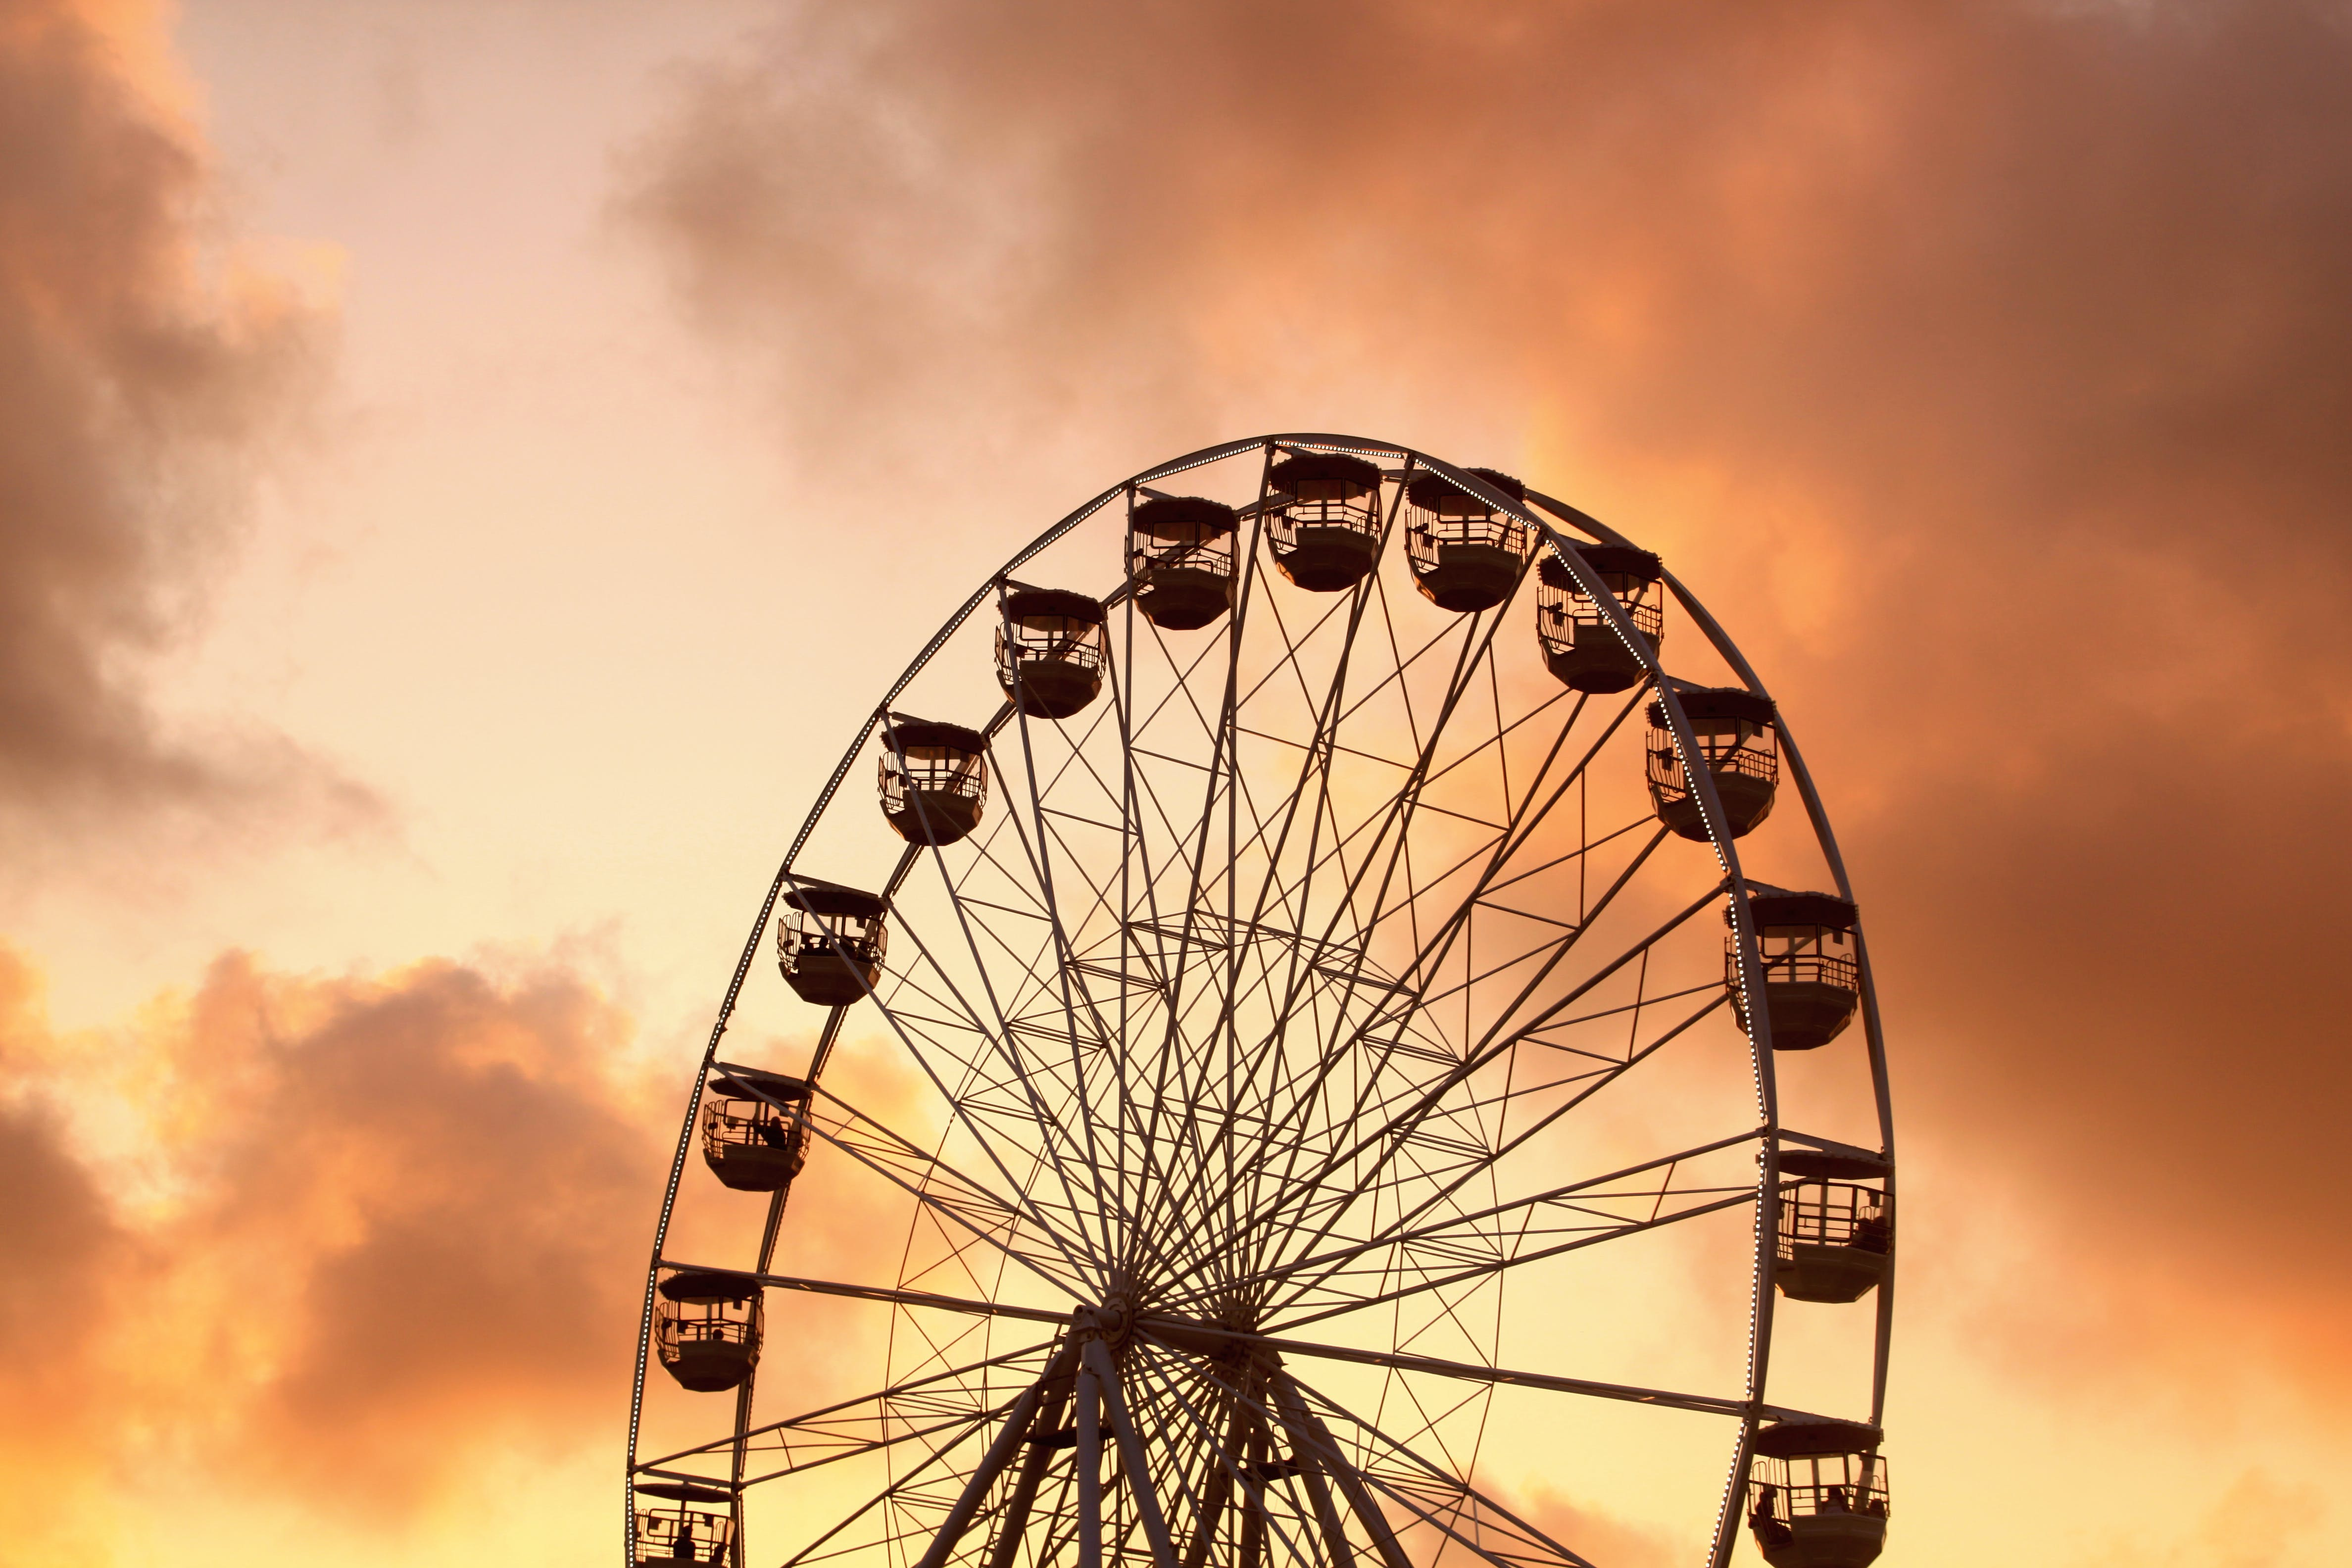 Photo of Ferris Wheel